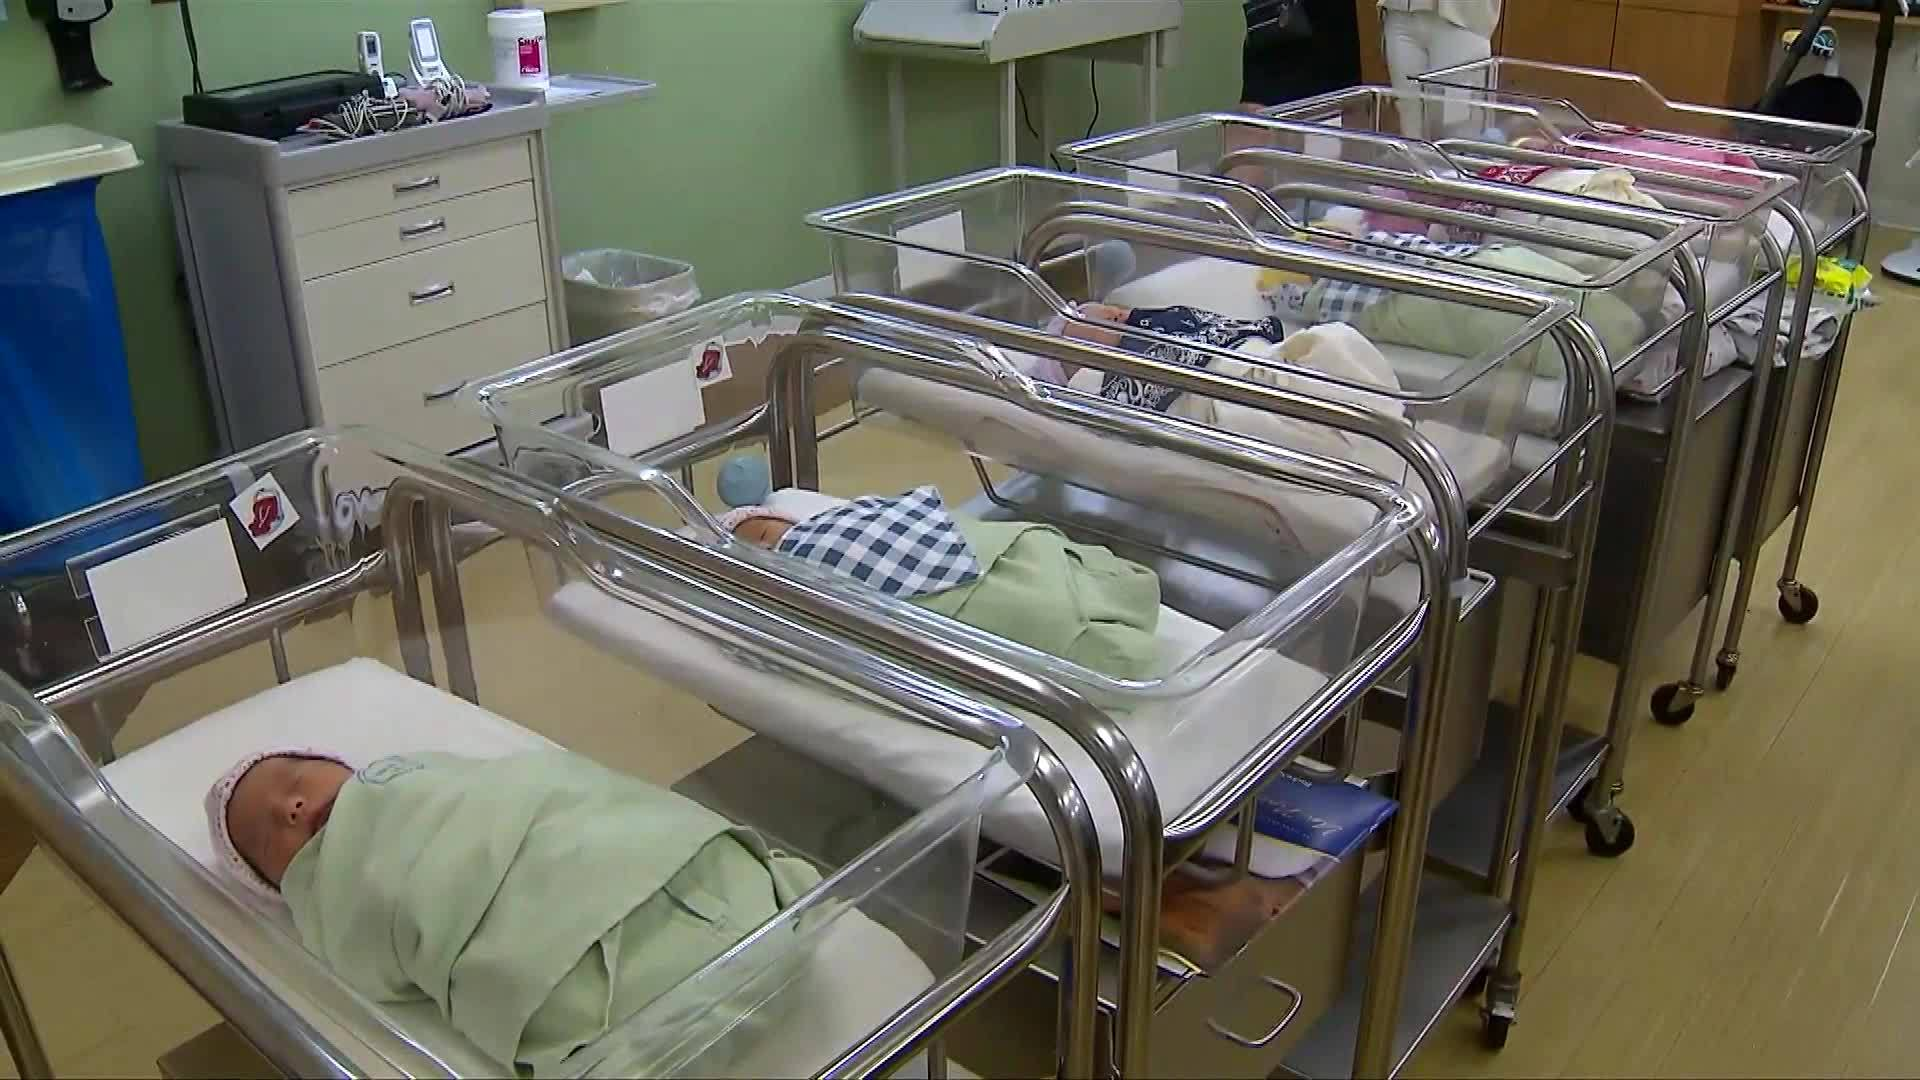 48 babies born in 41 hours at Texas hospital